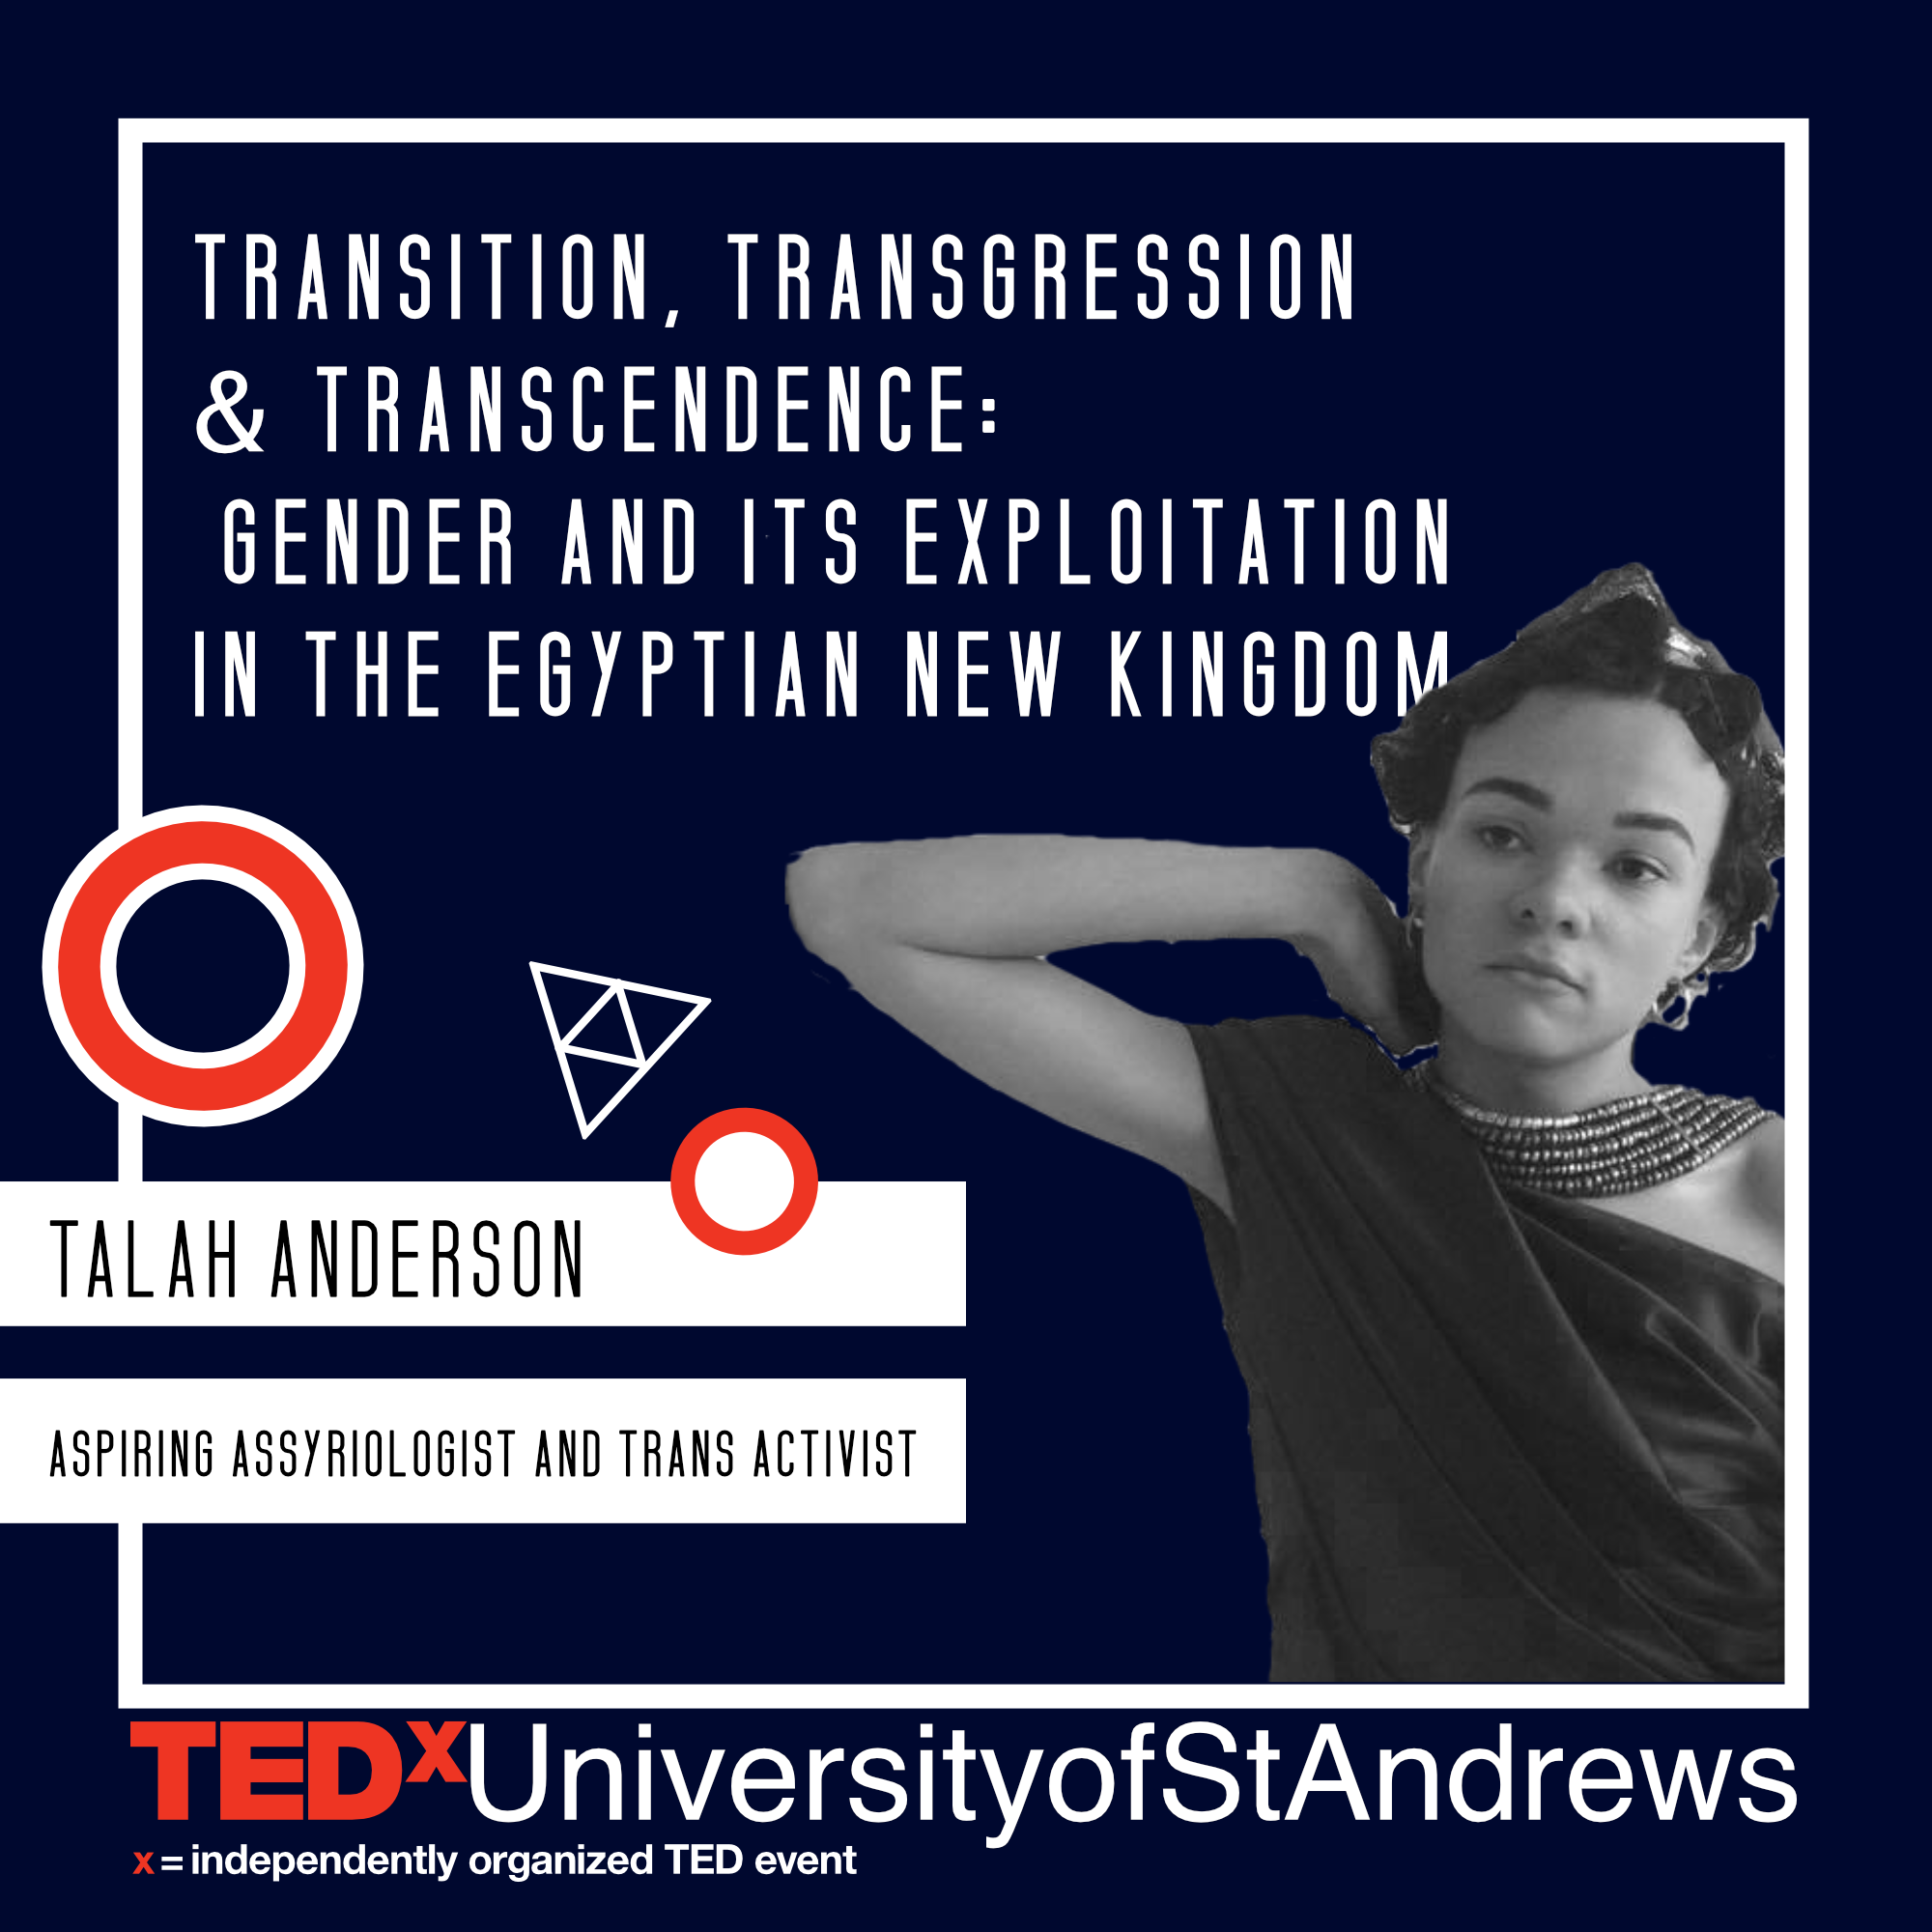 TALAH ANDERSON   Talah Anderson is a joint Biblical Studies and Medieaval History student with a strong passion for trans rights. She's been heavily involved with Saints LGBT+, acting as Gender and Sexualities Officer, which included organising the University's first Transgender Awareness Week festival. Talah also extended her work spotlighting issues relevant to trans and gender non-conforming people to the arts in St Andrews, directing both the performance piece 'The Joan of Arc Experience' and 'Salome' by Oscar Wilde, addressing various (trans)gender issues within. Breaking outside of St Andrews, Talah recently walked Charles Jeffrey's show, LOVERBOY, at London Fashion Week – a show expressing fashion strictly without any qualifications.   Talah is particularly fascinated by the ancient Near East, and aspires to continue to study the region at postgraduate level. Her talk will address the royal iconographies of Pharaohs Hatshepsut and Akhenaten, and the blurring of binary gender categories therein.